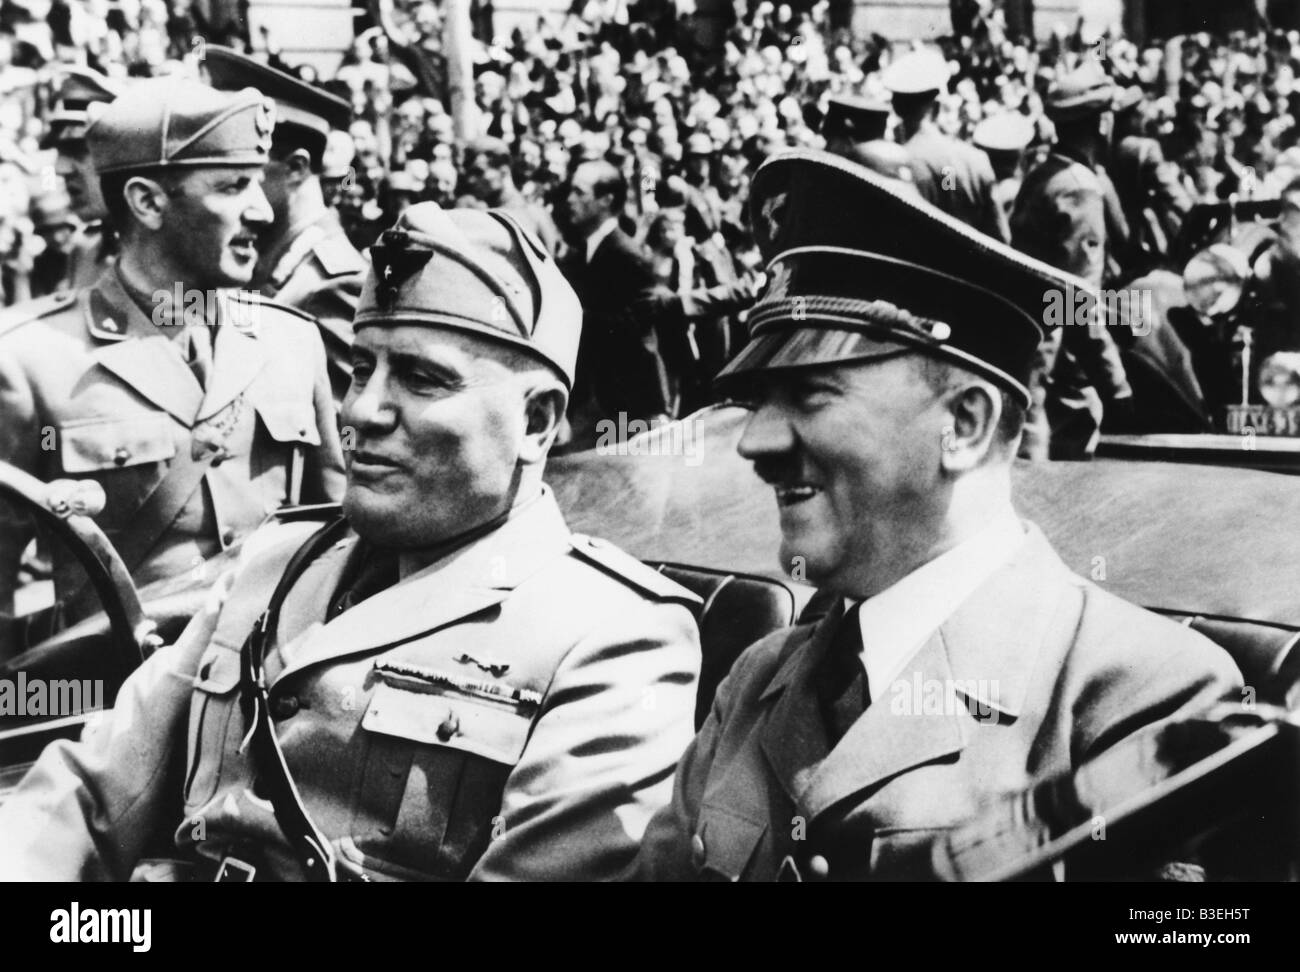 Hitler & Mussolini in a car, 1940. Stock Photo